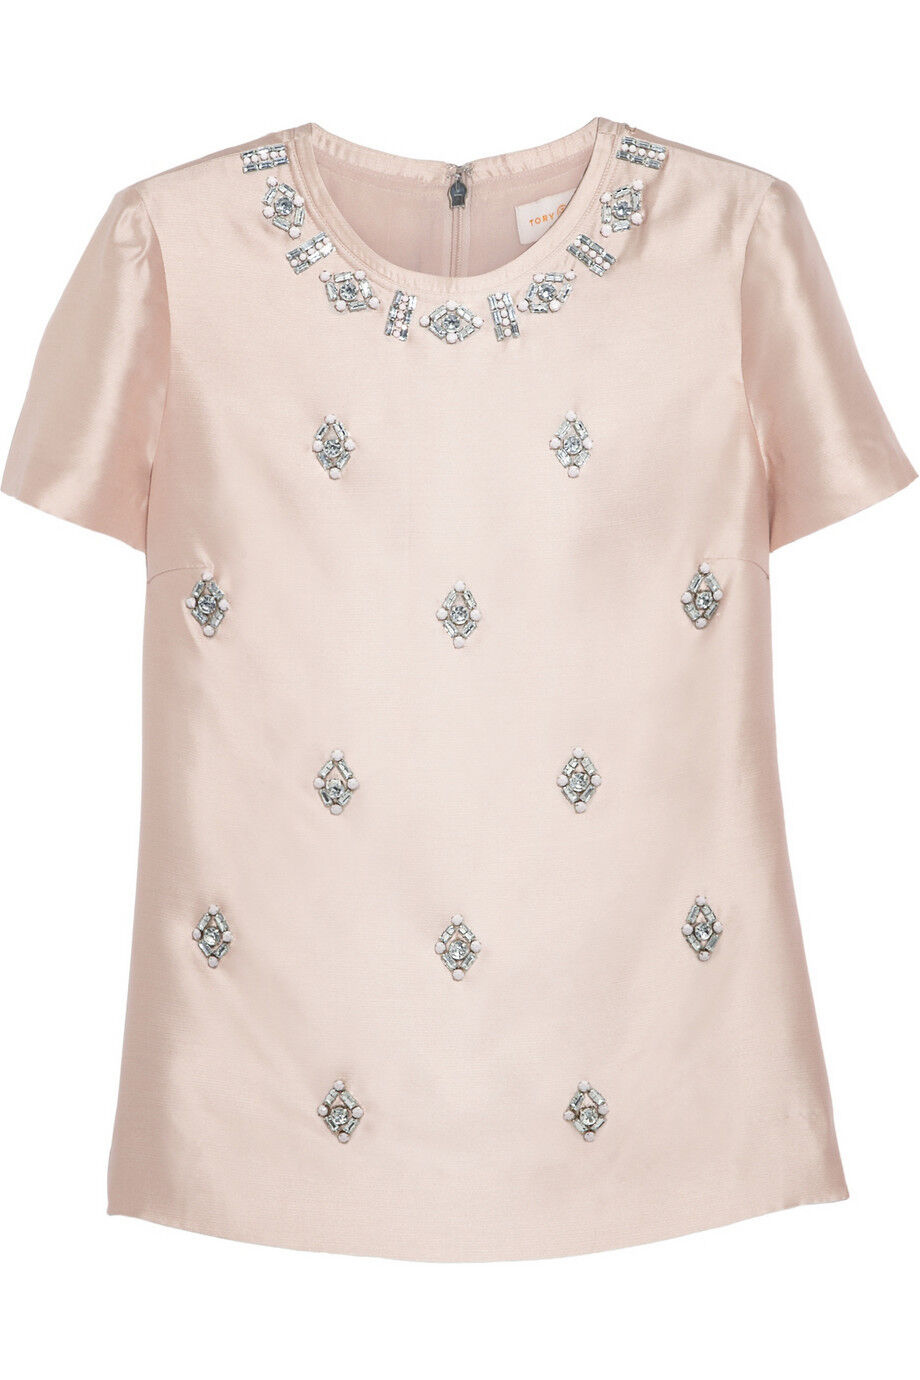 NWT Tory Burch Bead Embellished Woven Silk Top Größe 0